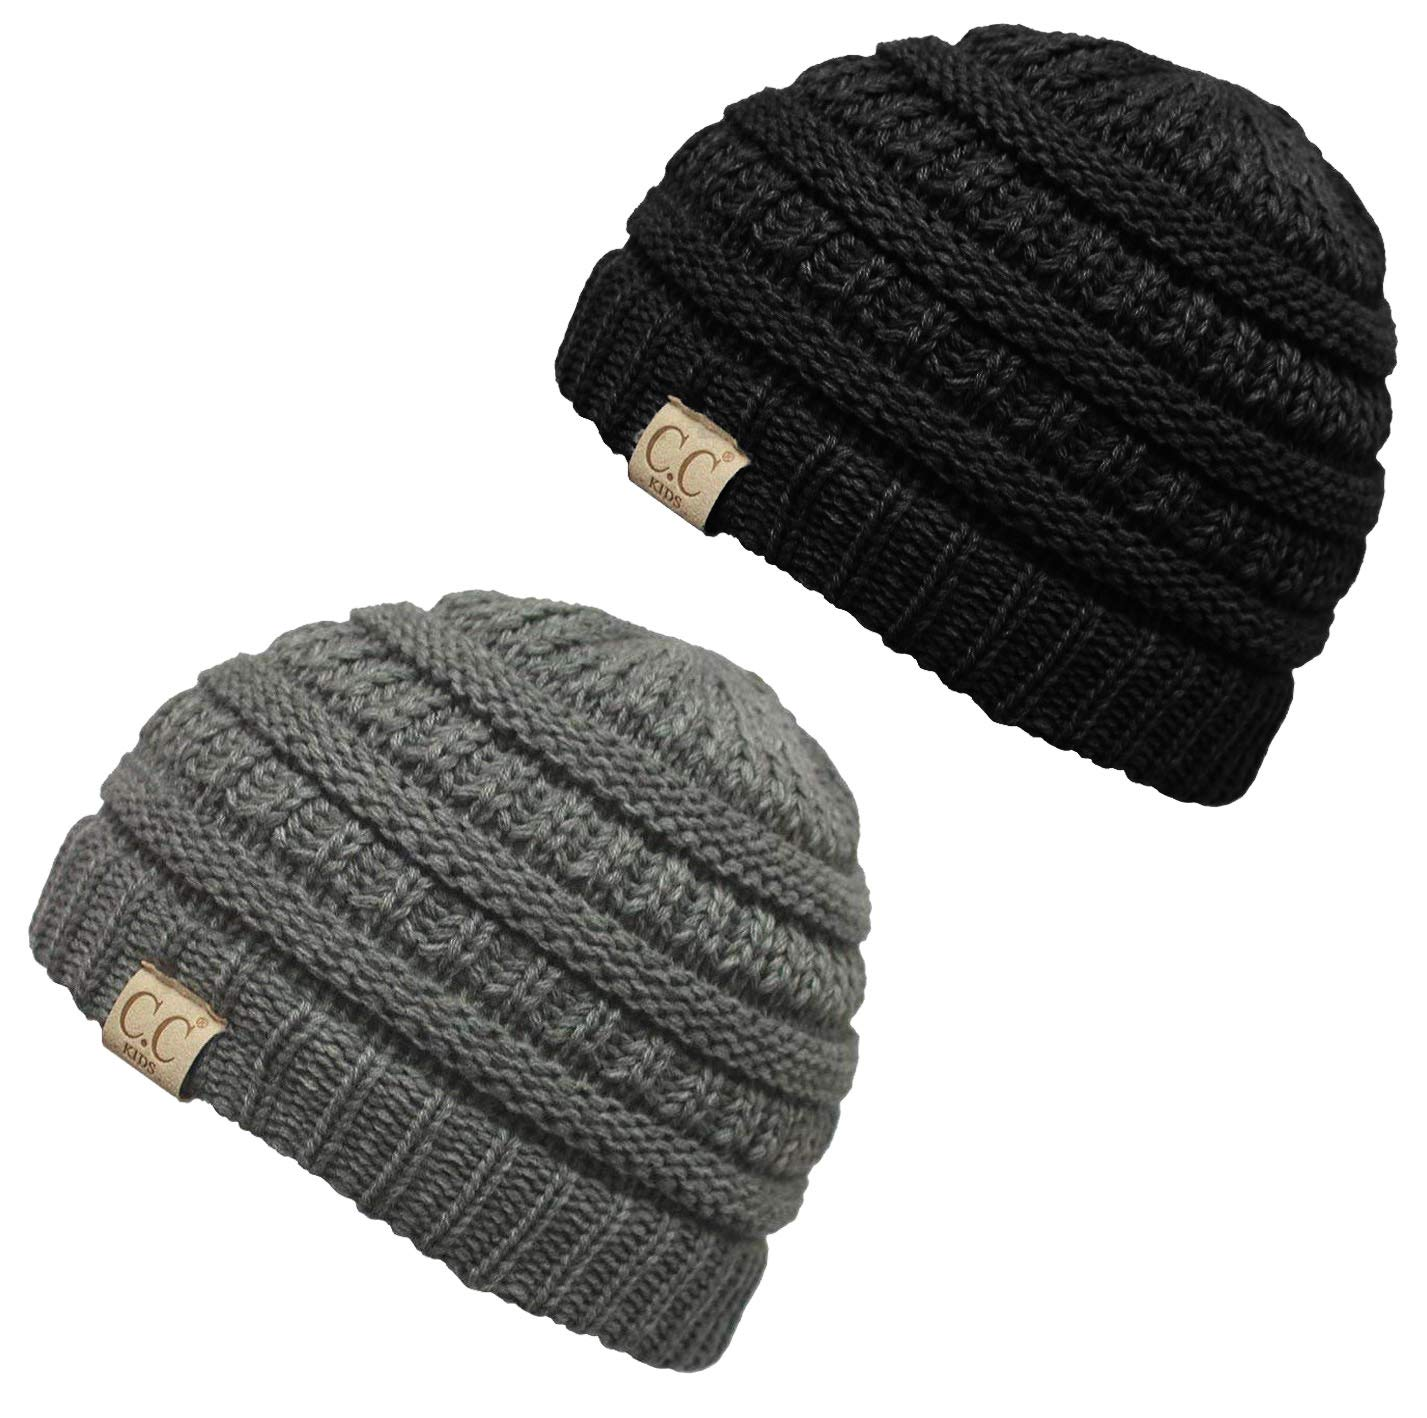 b947d152aab Funky Junque CC Kids Baby Toddler Ribbed Knit Children s Winter Hat Beanie  Cap 1 Grey Black  31 (2 Pack) H-3847-2-06-816.06-FJ  1540895498-16829  -   13.39